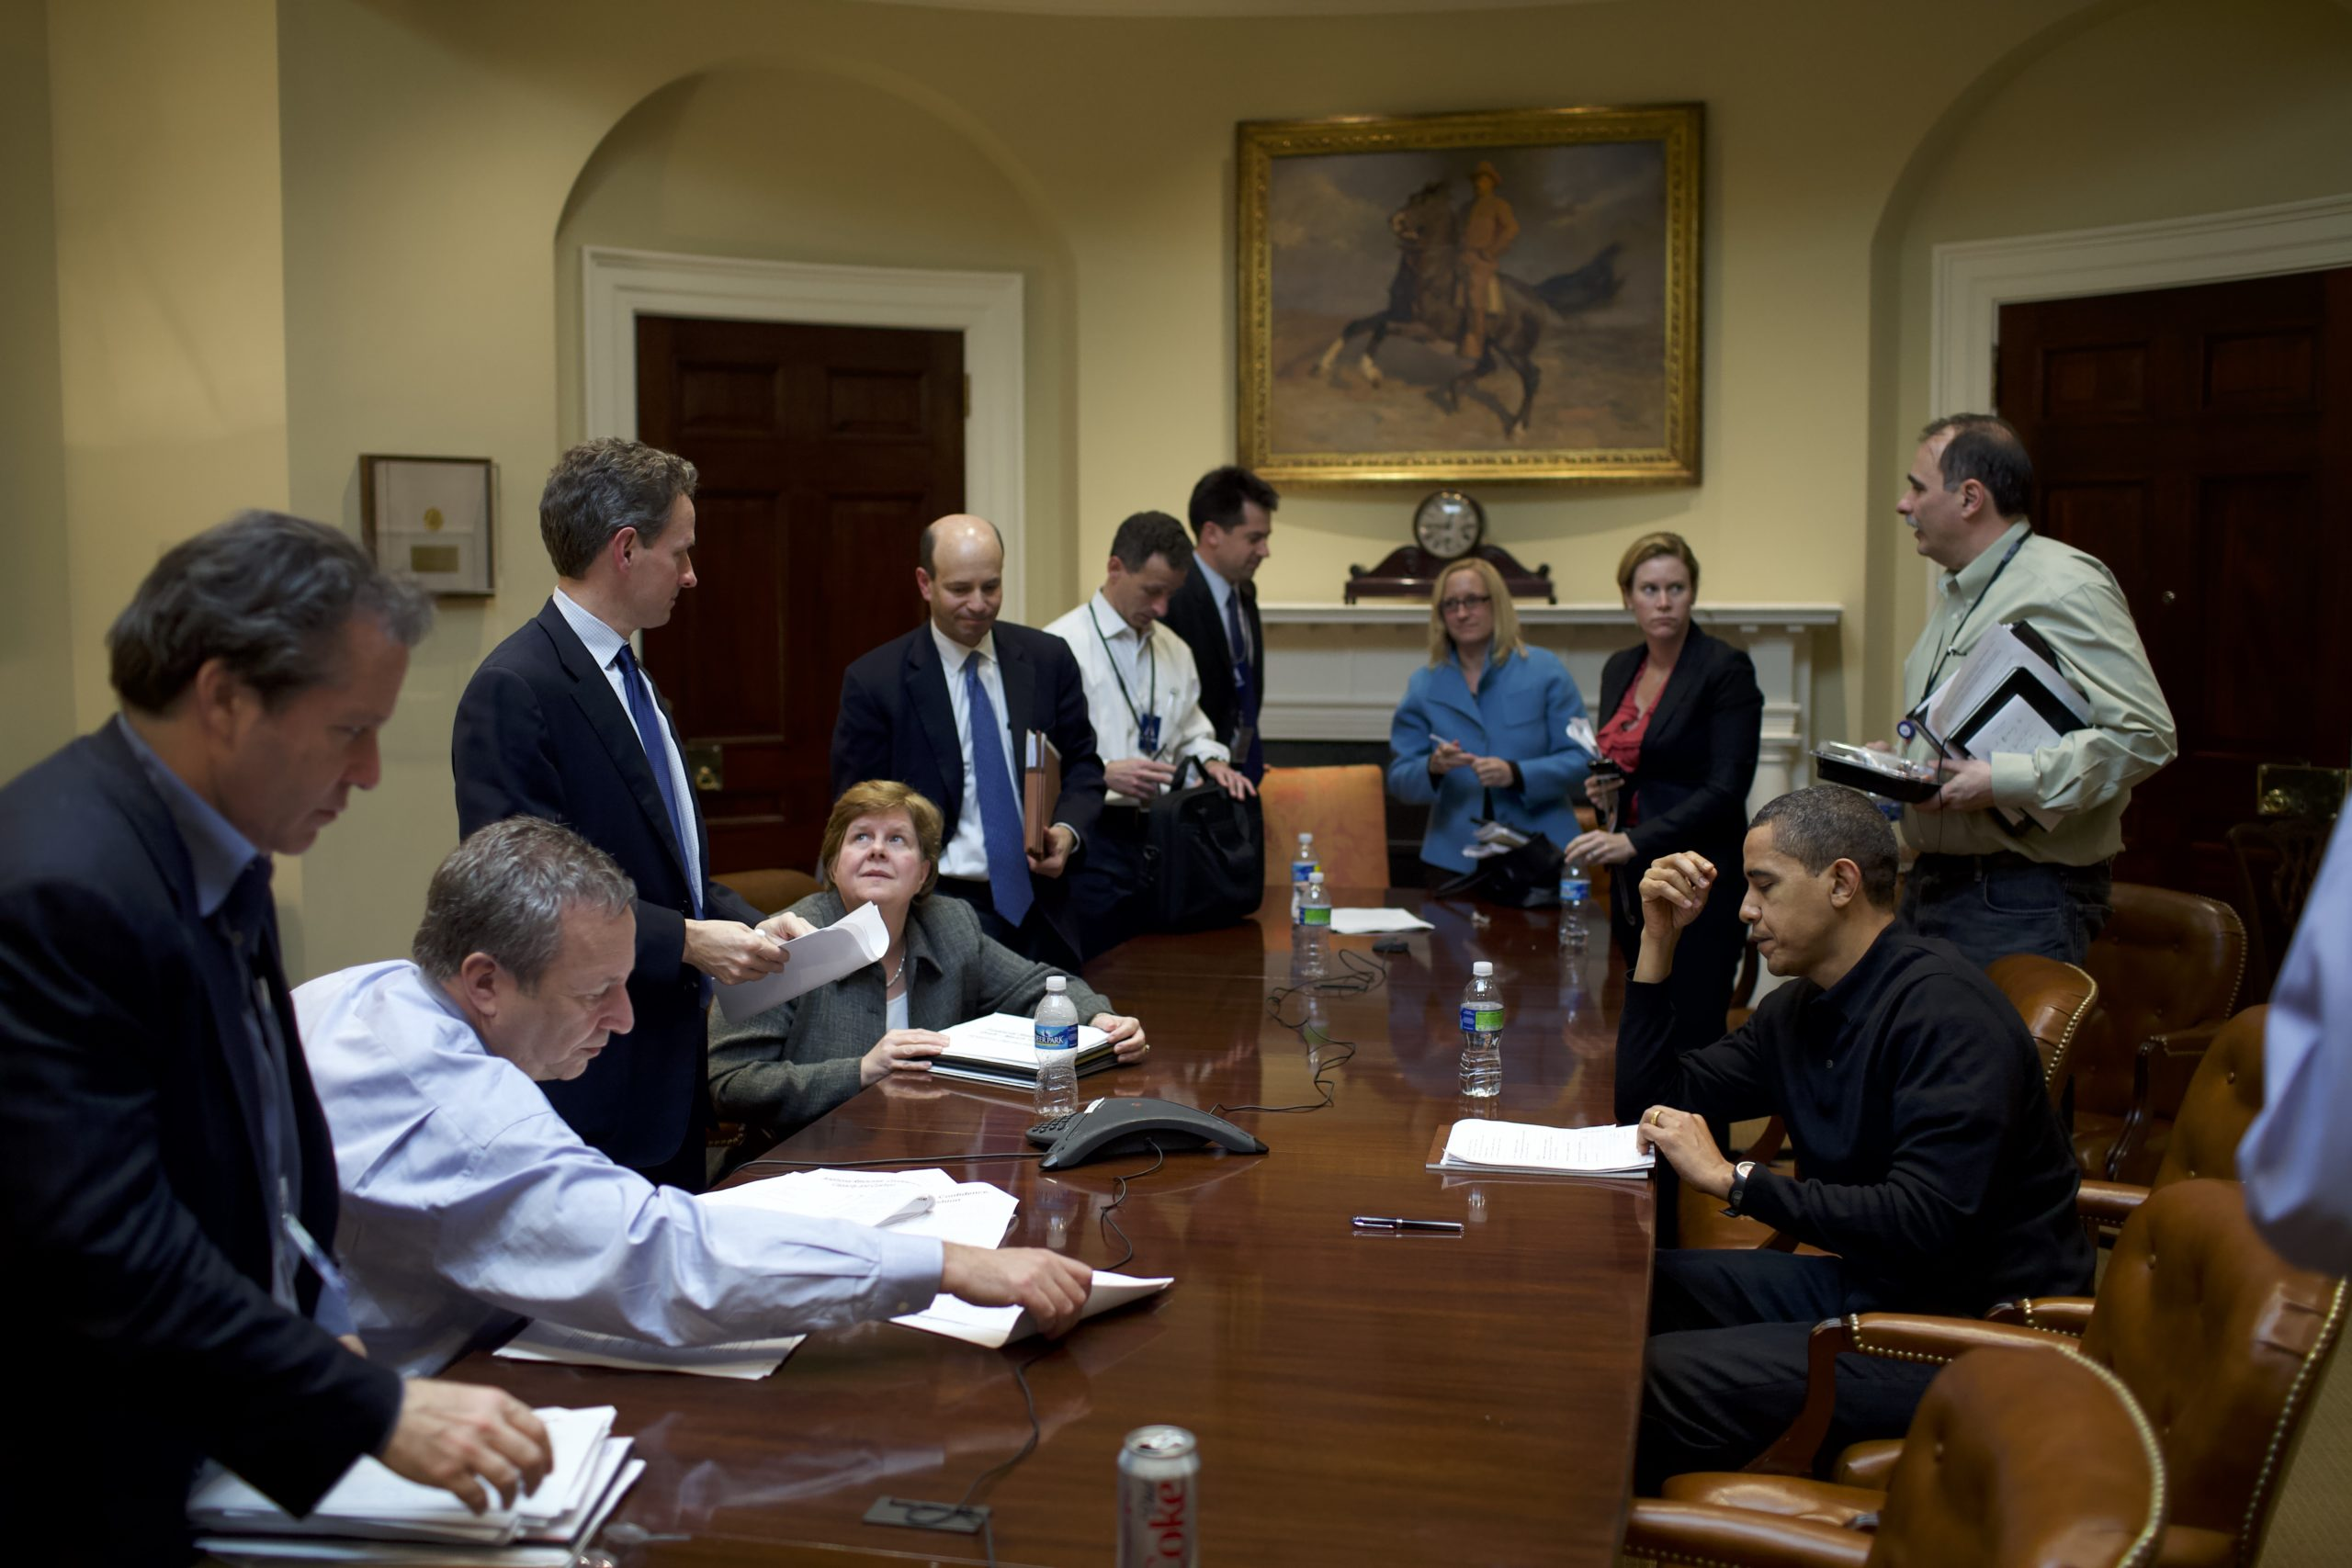 President Obama meets with economic advisors in the Roosevelt Room. March 15, 2009.